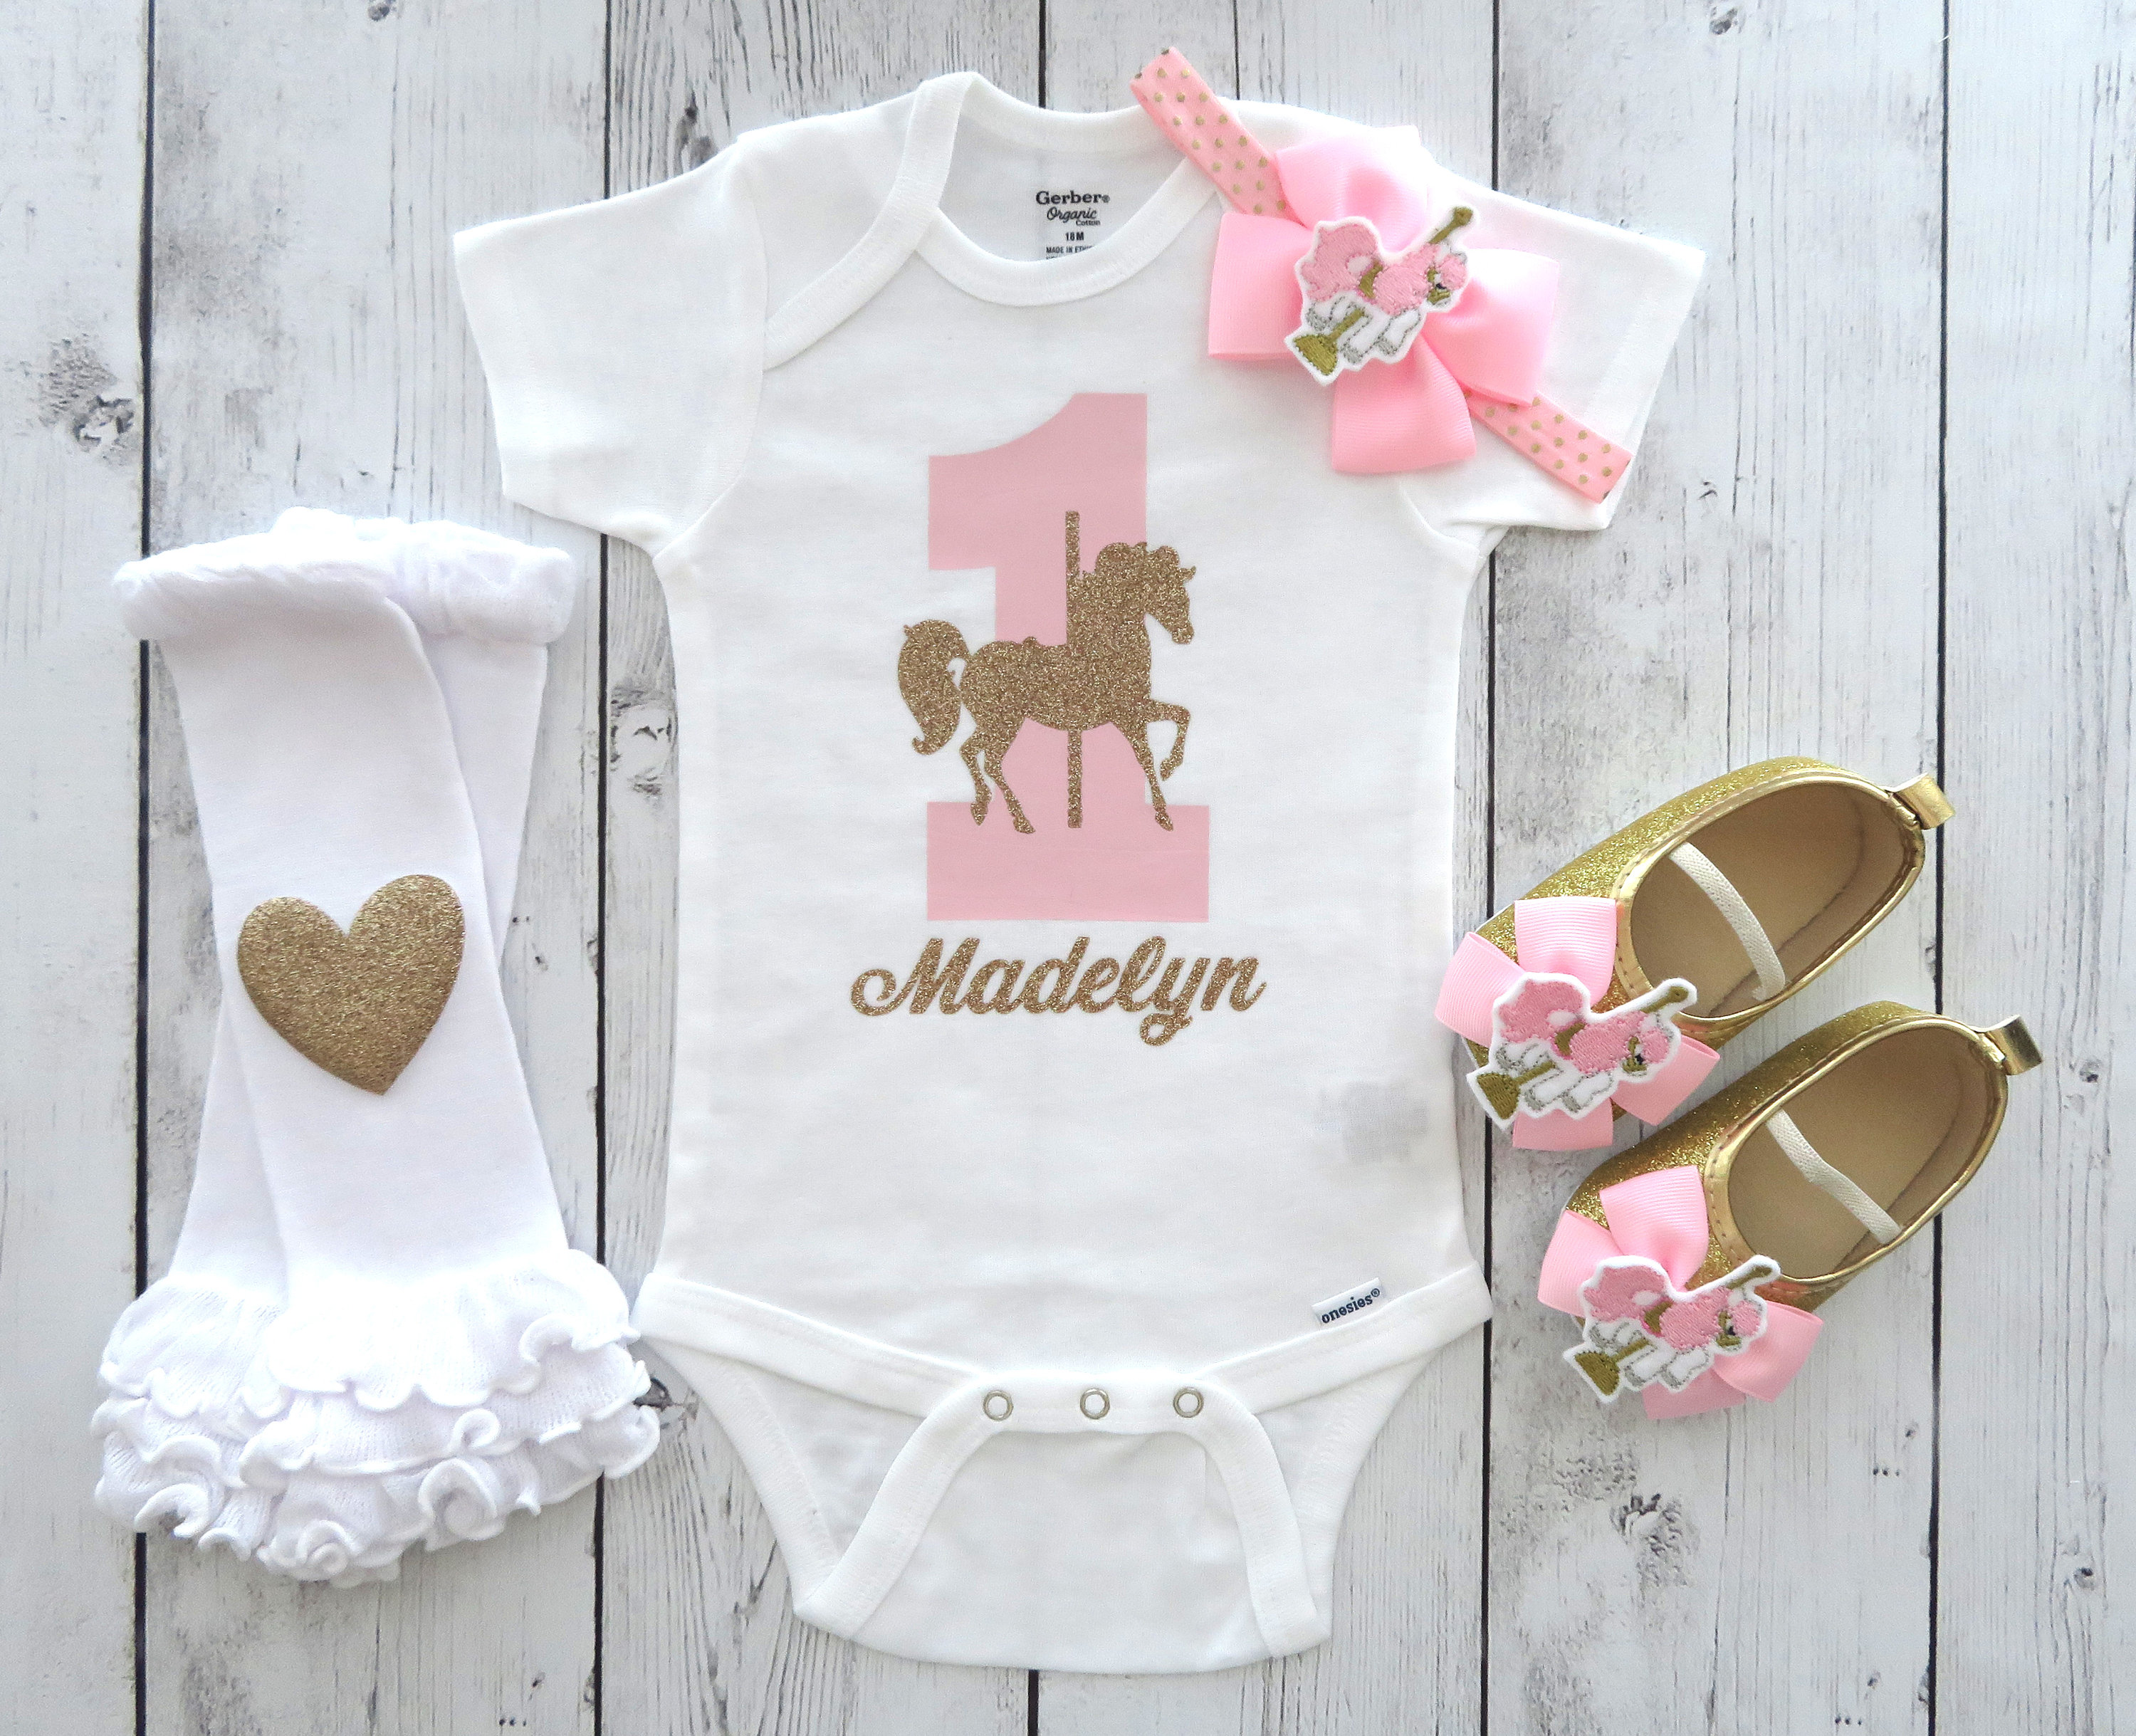 Carousel Horse First Birthday Onesie - pink gold, personalized, first birthday shirt, carousel horse pink gold, carousel horse shoes